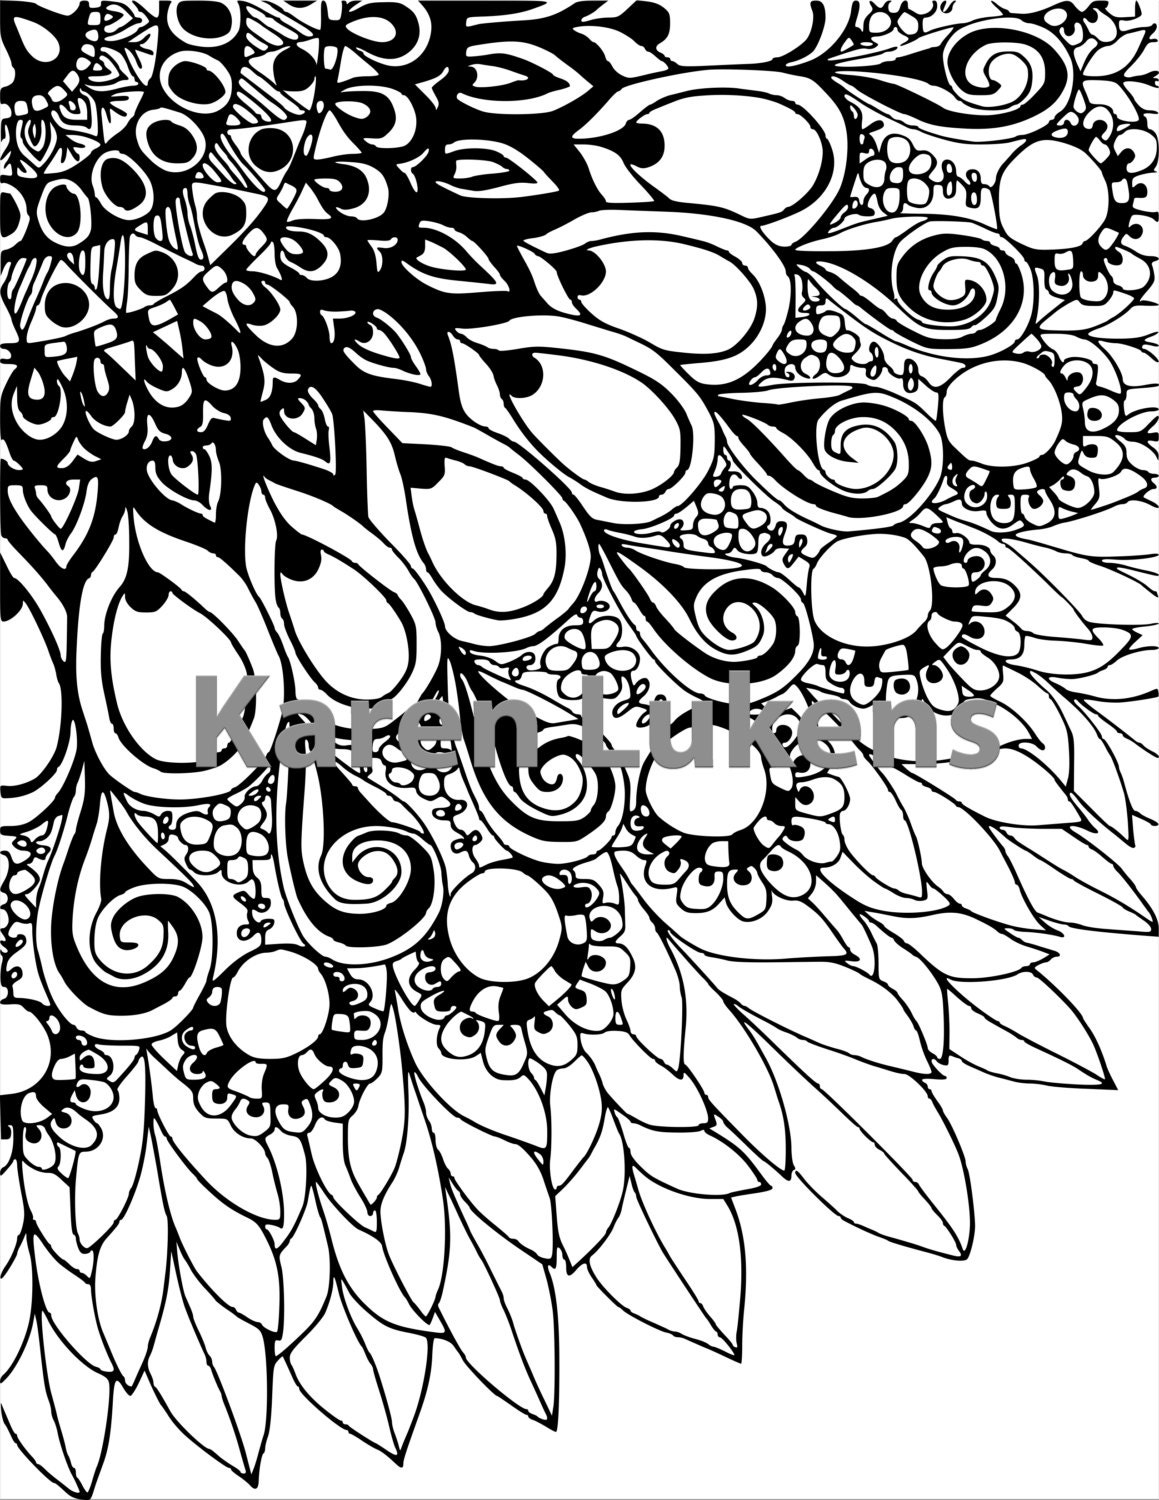 5 pages mandalas pack 1 5 coloring book pages printable